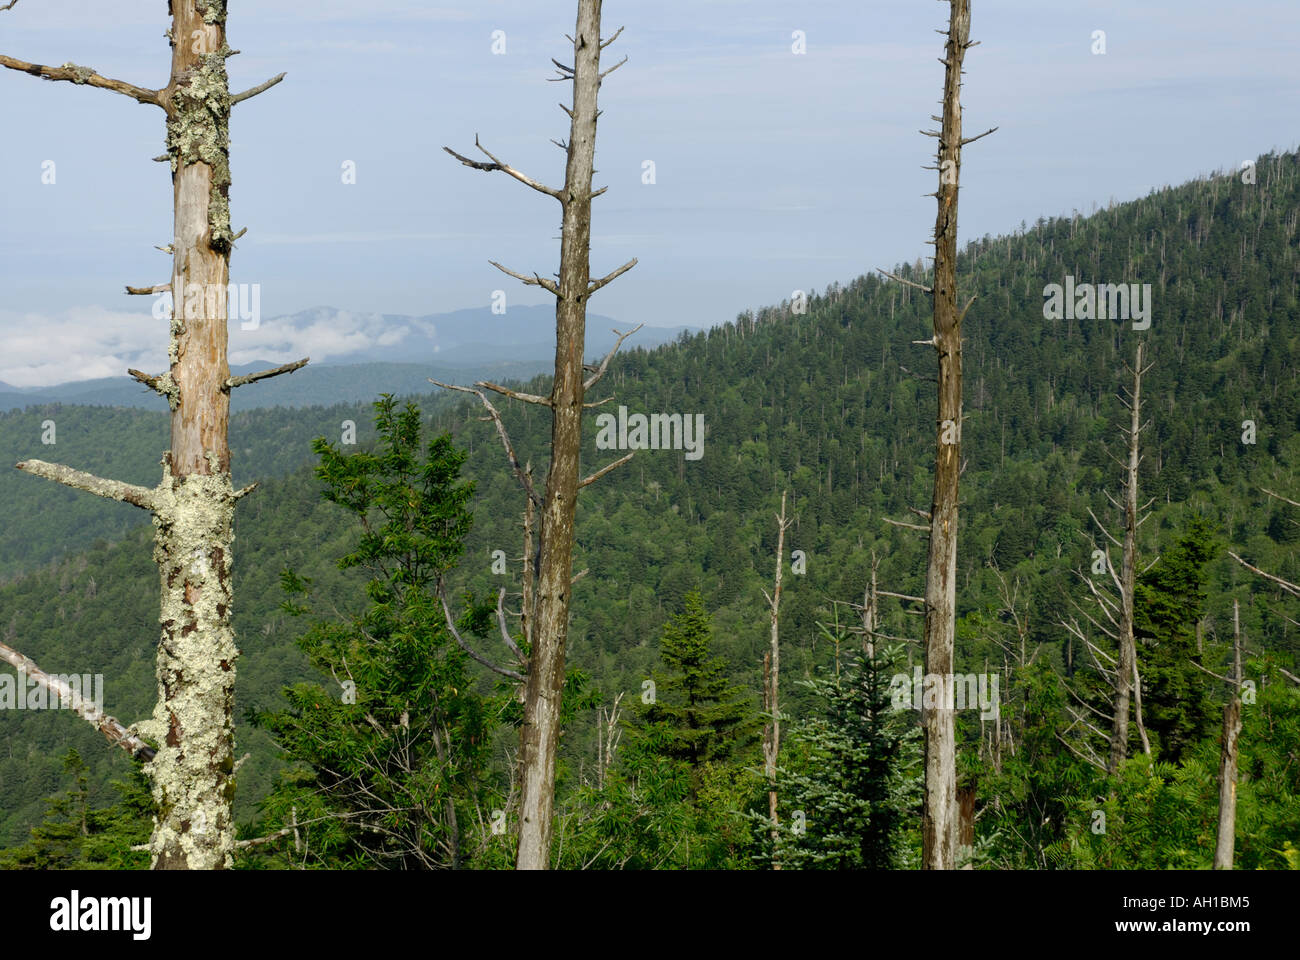 Dead Fraser Fir, Abies fraseri, trees - victims of Balsam Wooly Adelgid, Clingman's Dome, Great Smoky Mountains National Park - Stock Image